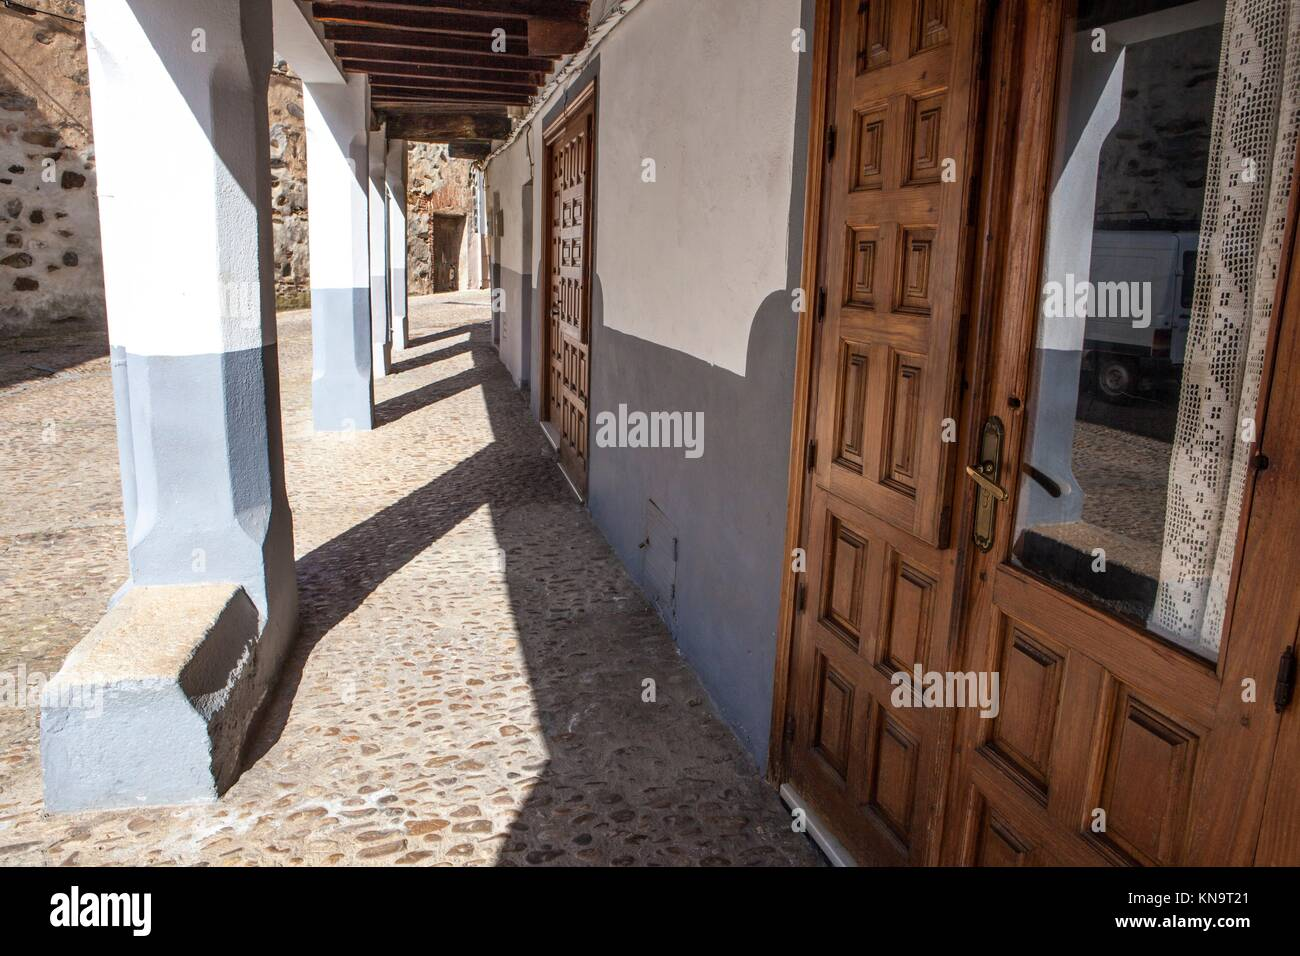 Guadalupe old town arcaded streets, Caceres, Extremadura, Spain. - Stock Image